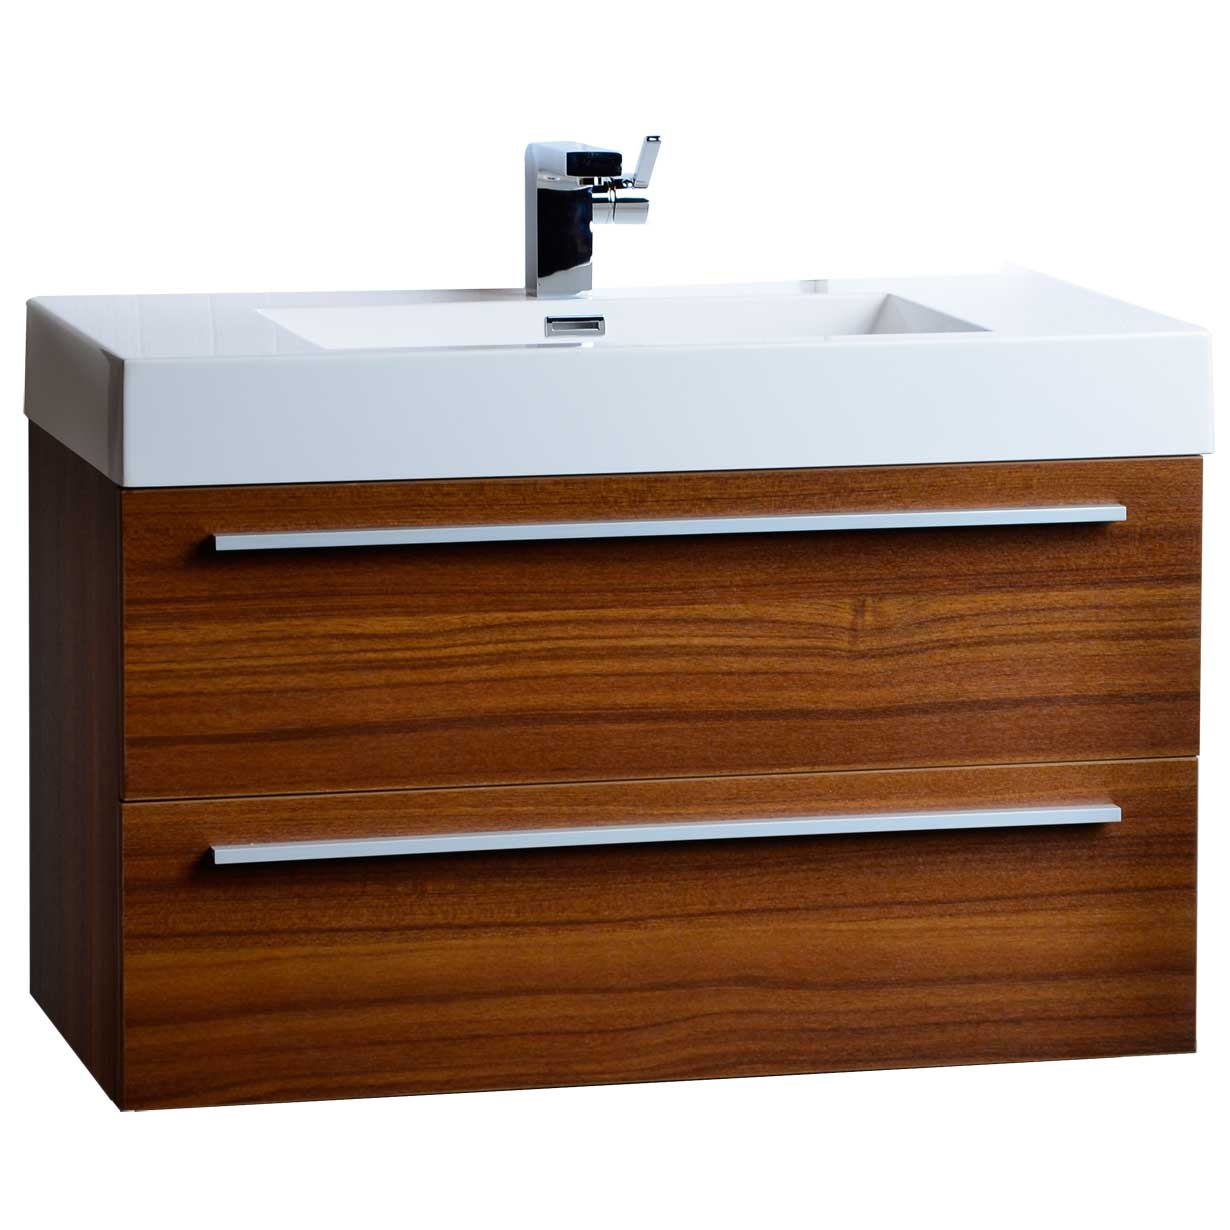 35 5 Wall Mount Contemporary Bathroom Vanity Teak Tn M900